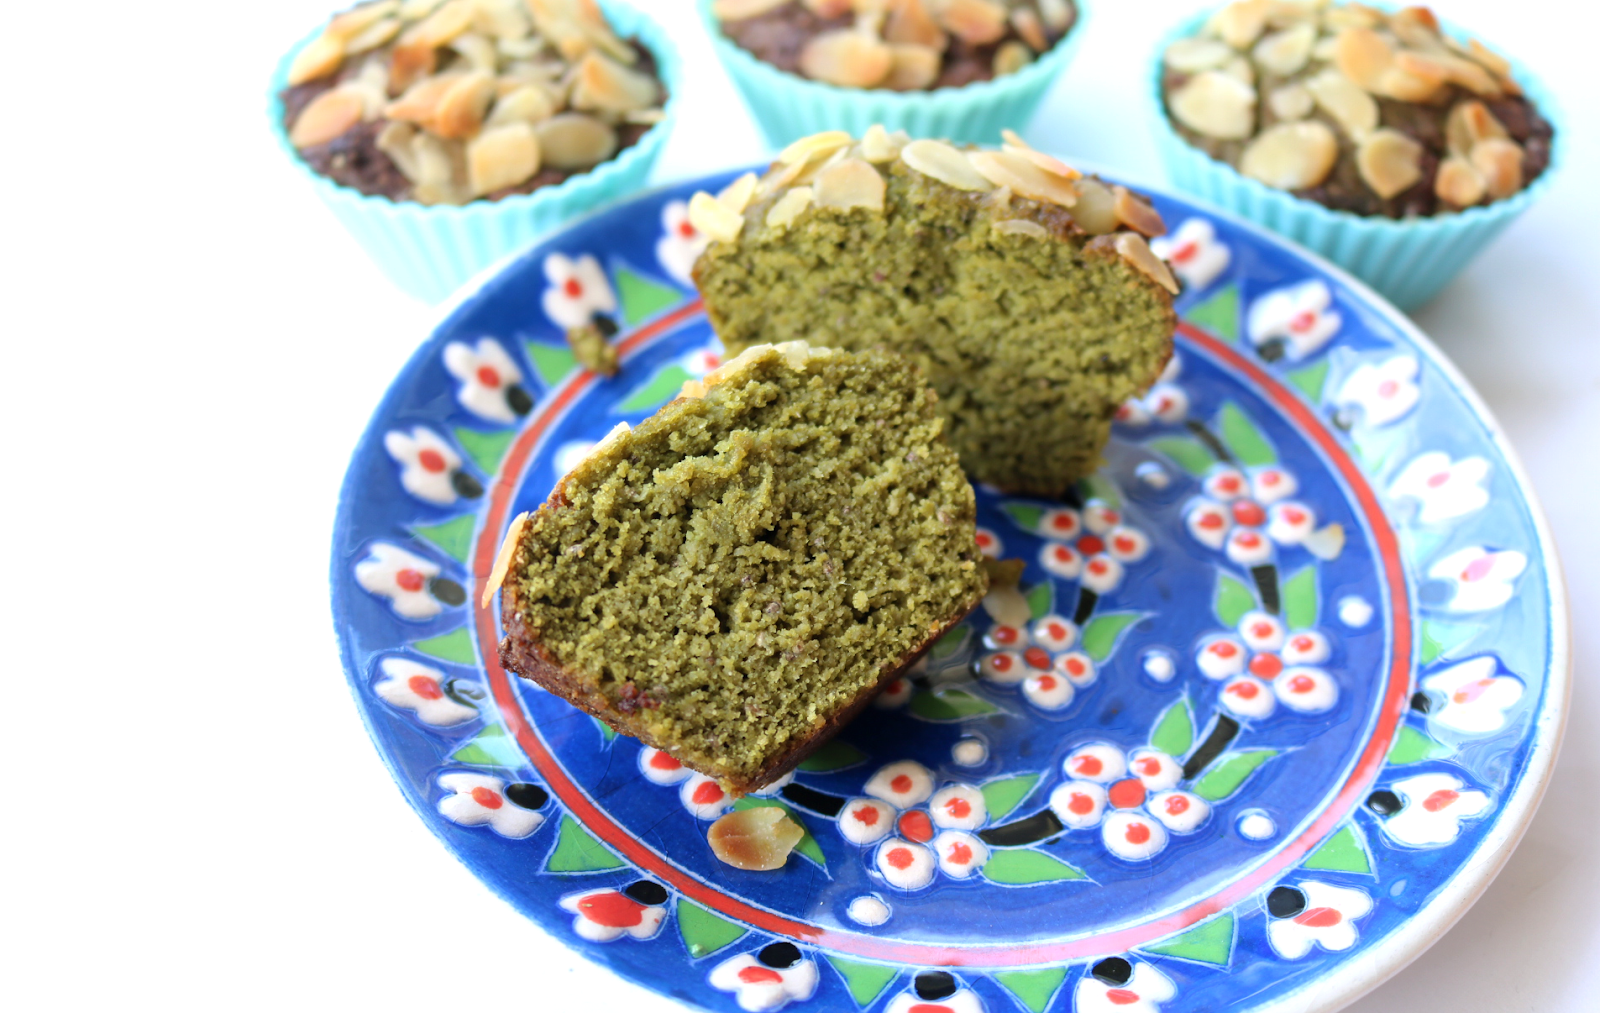 Matcha Green Tea & Lemon Muffins (Dairy-Free / Vegetarian / Gluten-Free recipe)